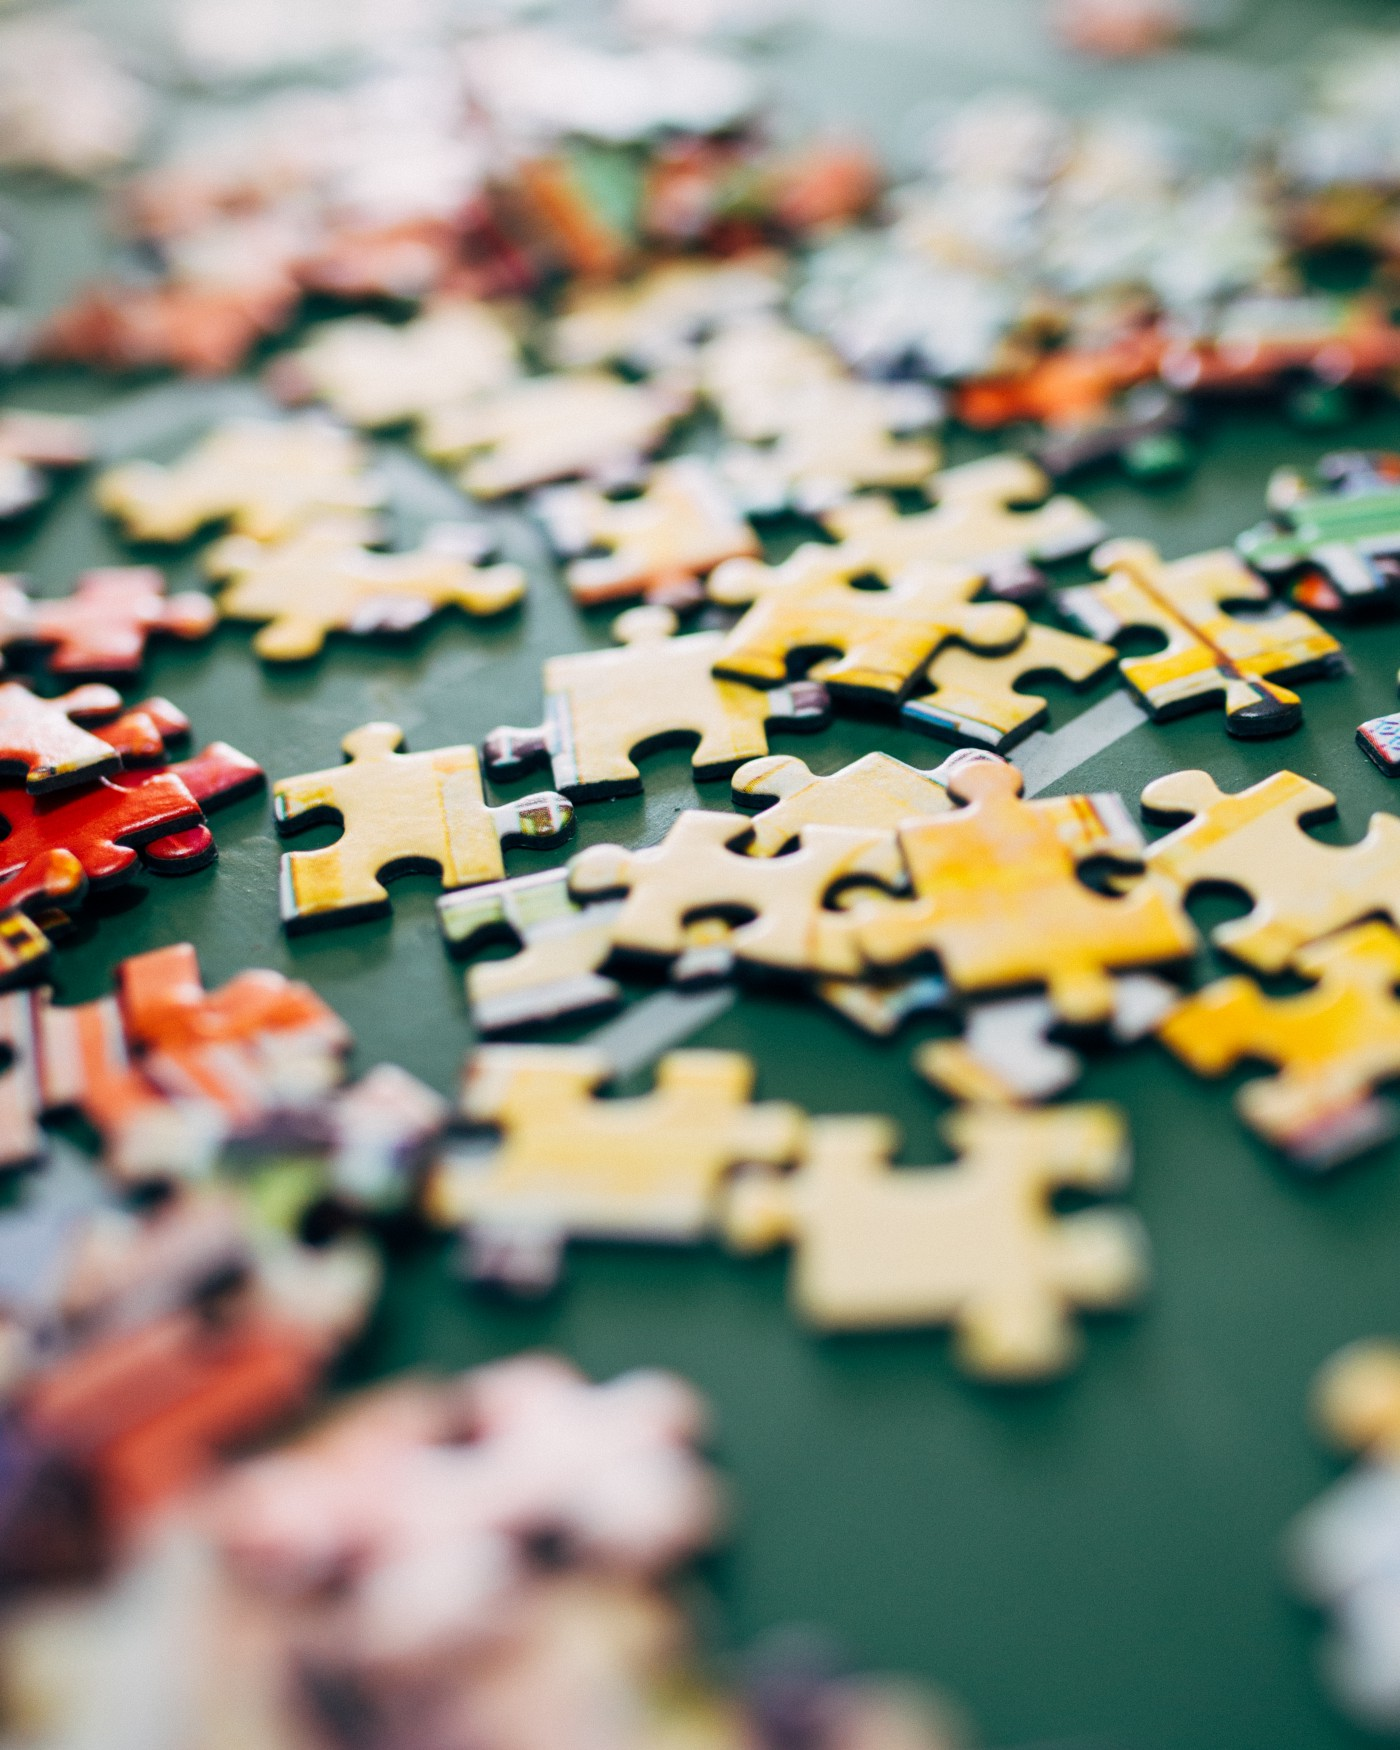 A picture of loose yellow colored jigsaw puzzle pieces